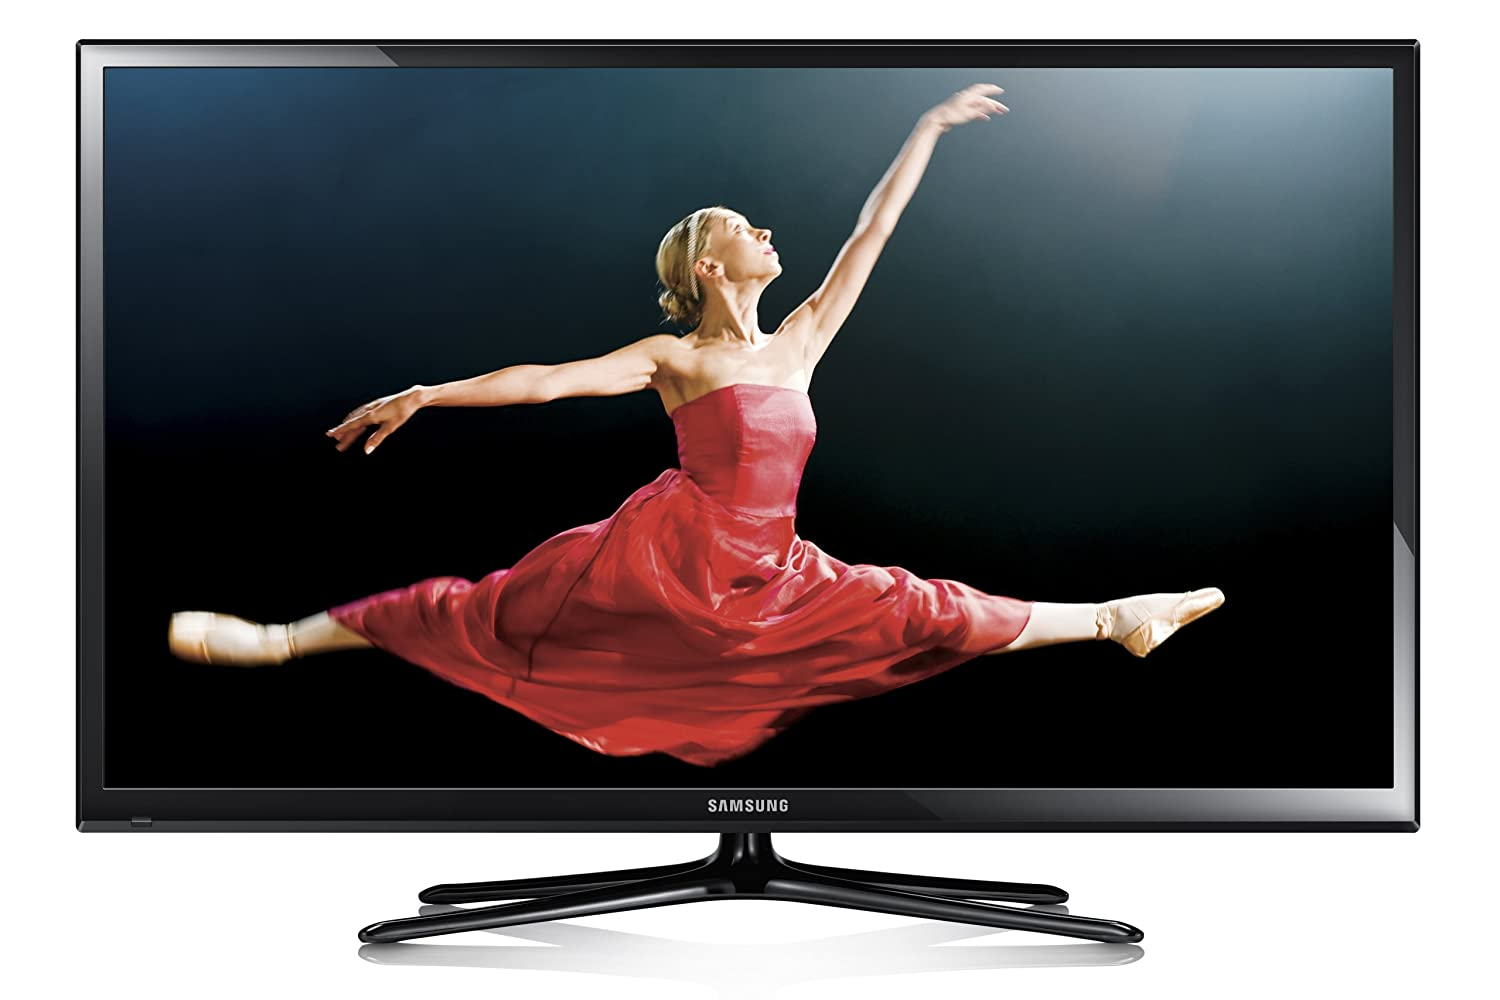 Amazon.com: Samsung PN51F5300 51-Inch 1080p 600Hz Plasma HDTV (2013 Model):  Electronics